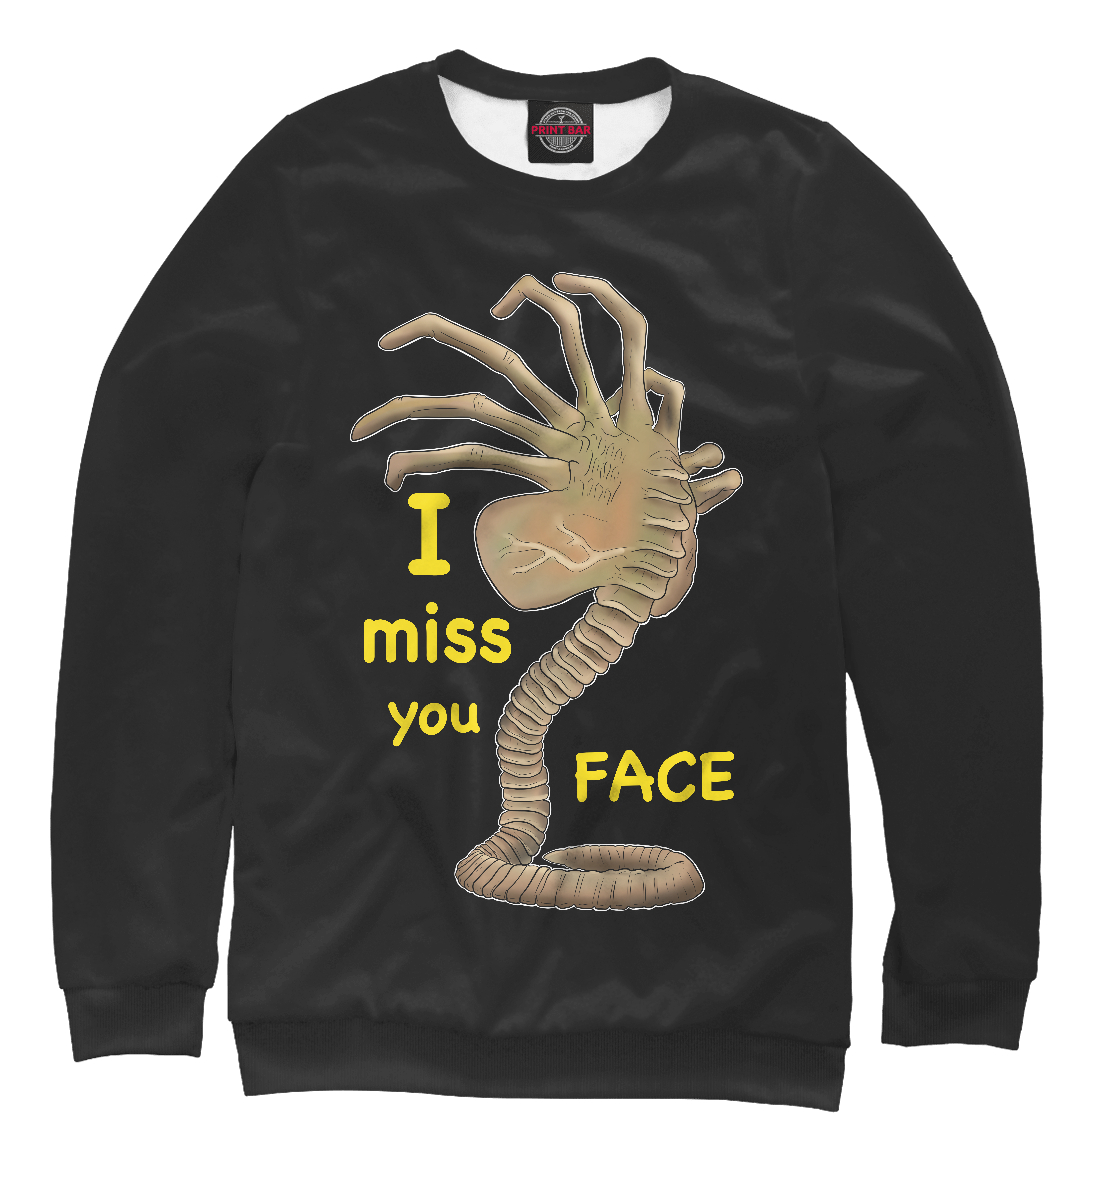 I miss you face i fear you girl